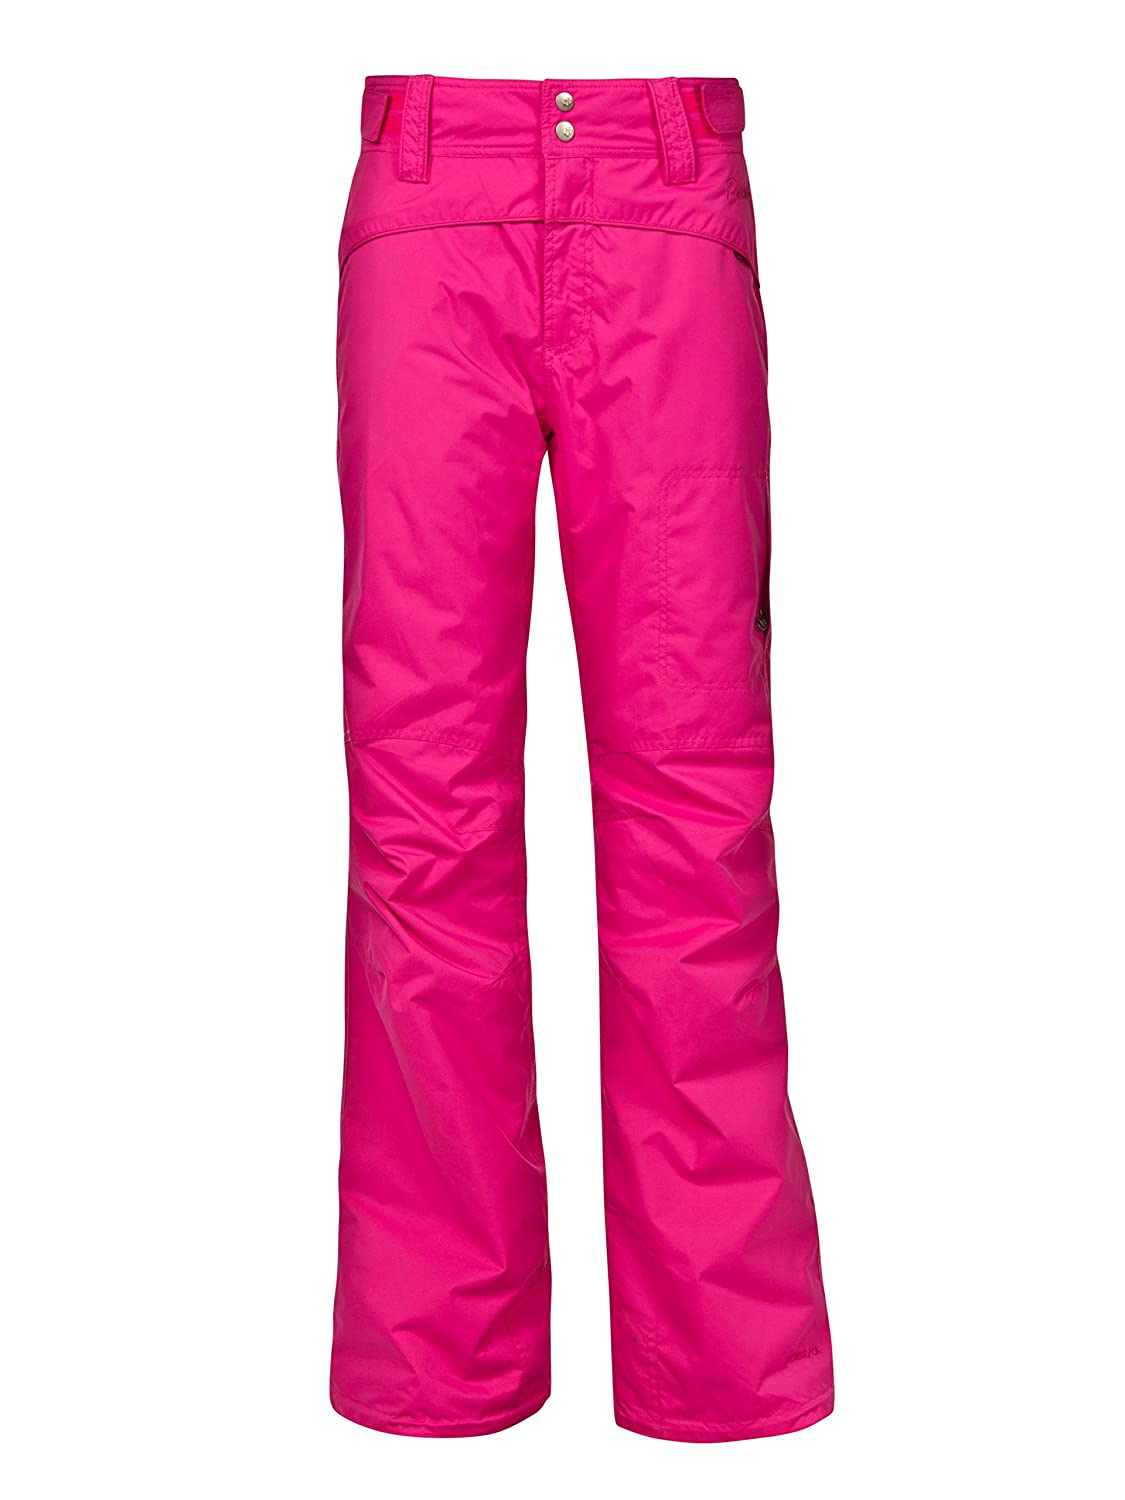 Protest Pantaloni da Neve Hopkins, Donna, Peoney Rose, 2X-Large/Size 44 4610200-827-XXL/44